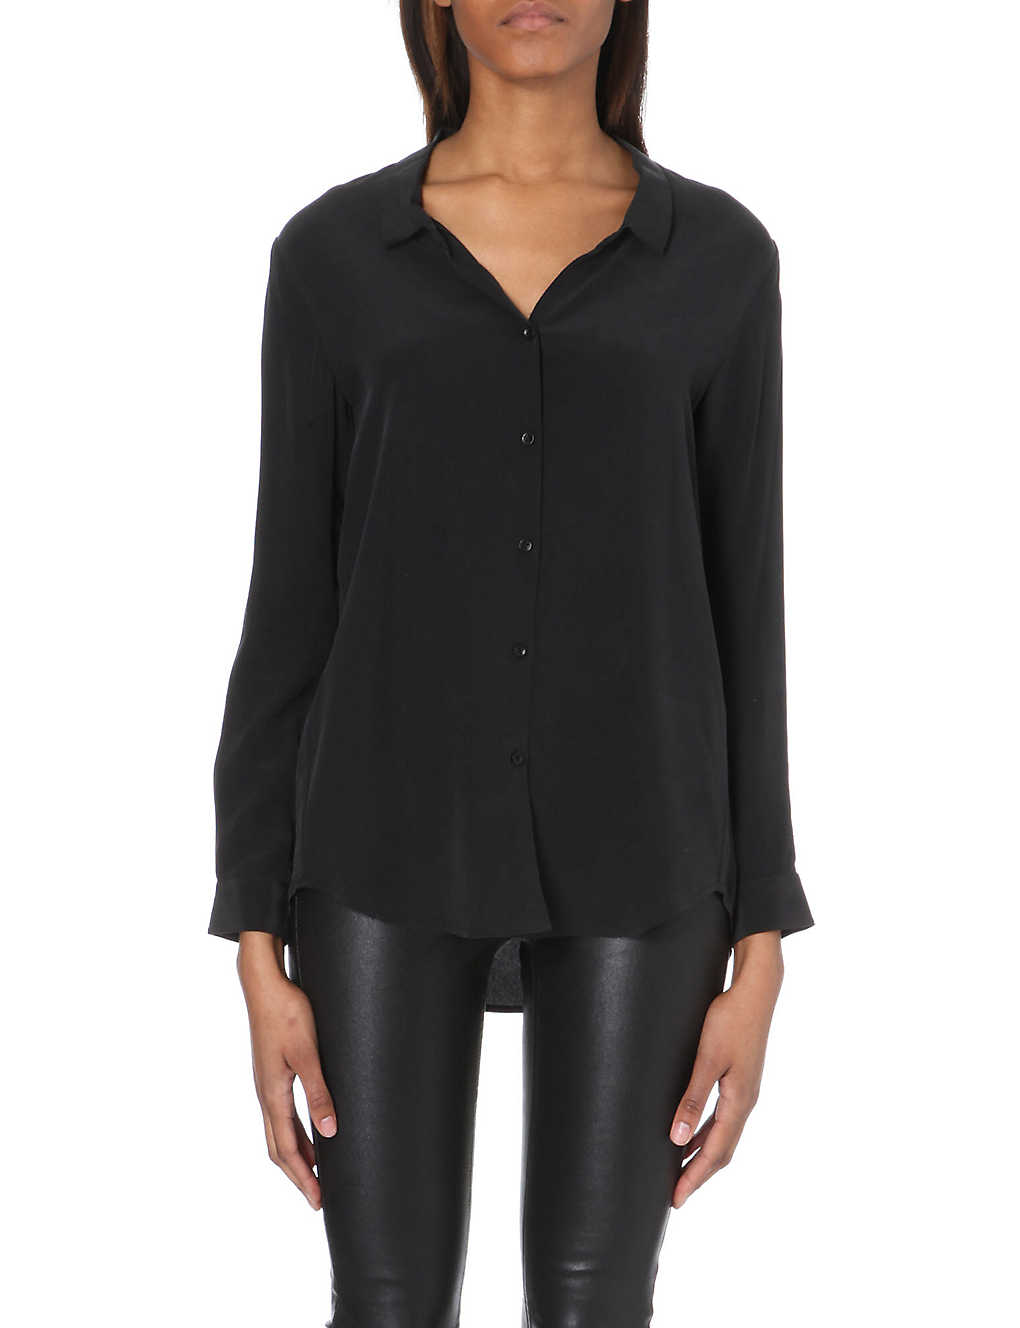 afeabf6d545 THE KOOPLES - Silk boyfriend shirt | Selfridges.com